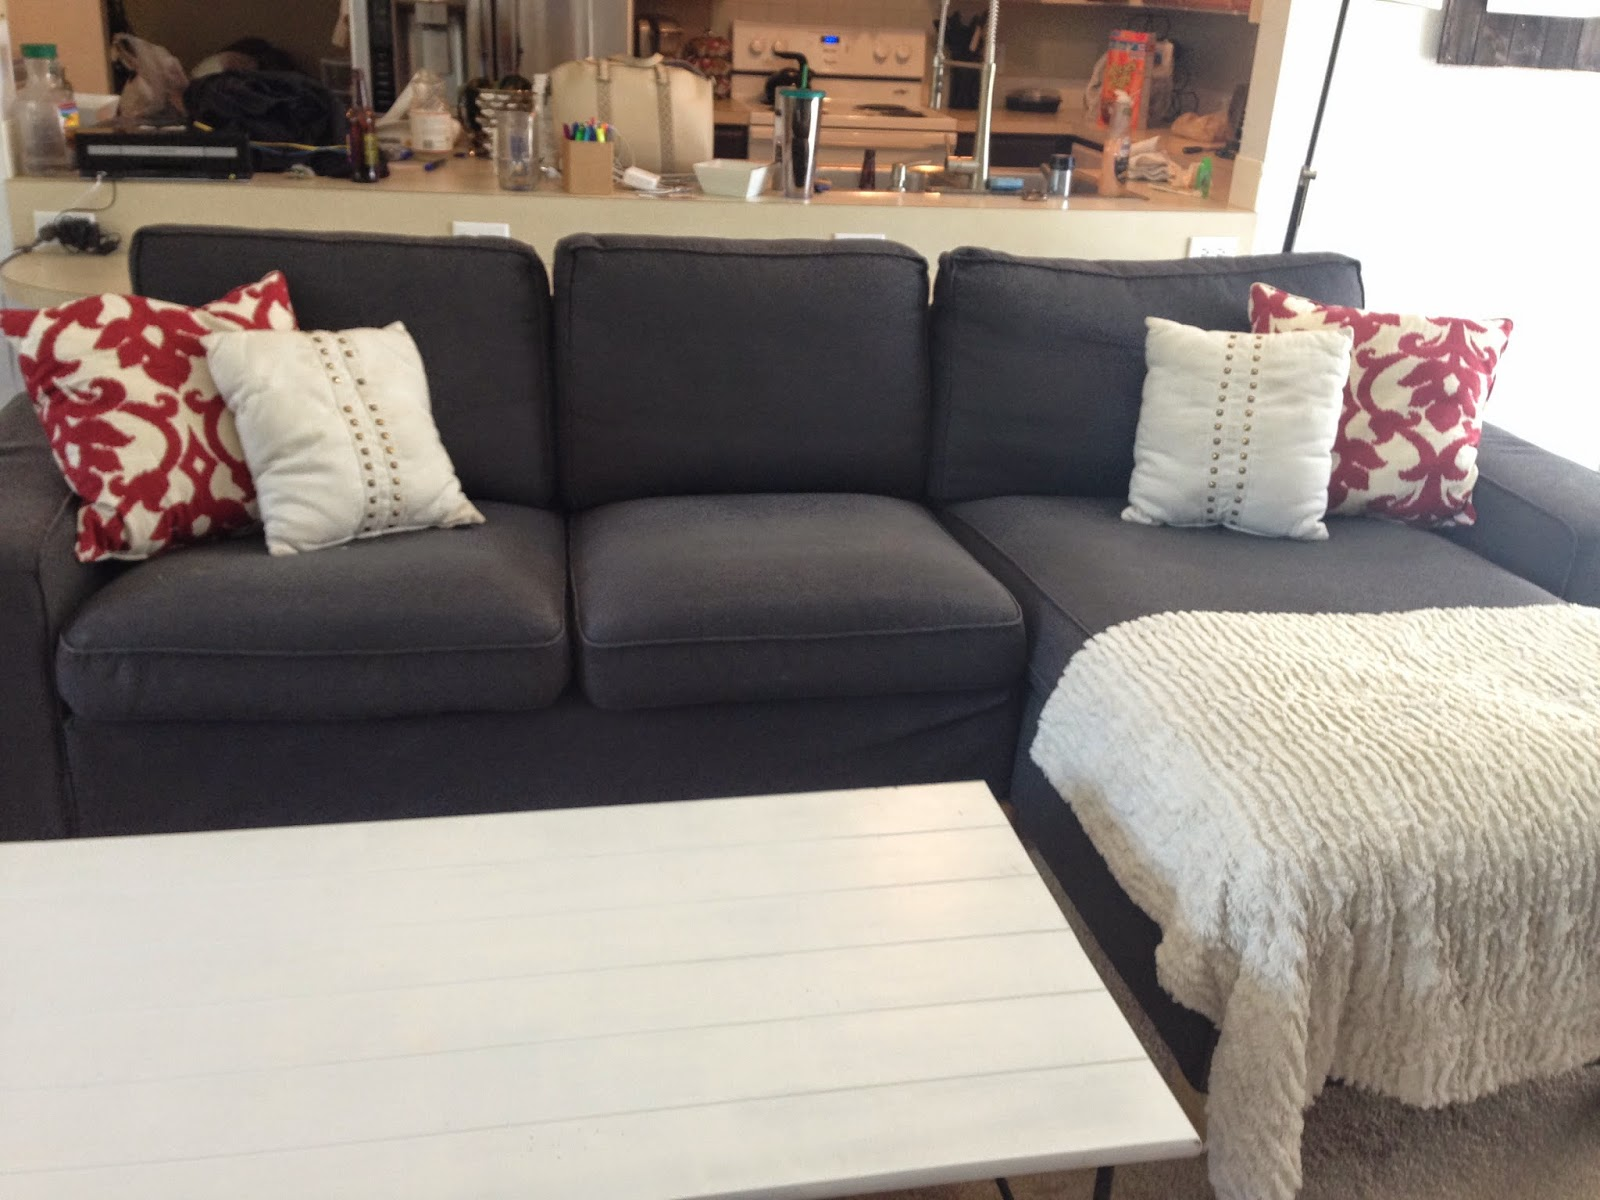 For The Most Part Minus That Stupid Wrinkle Couch Comes Together Nicely When Necessary Would We Purchase Another Kivik From Ikea Again